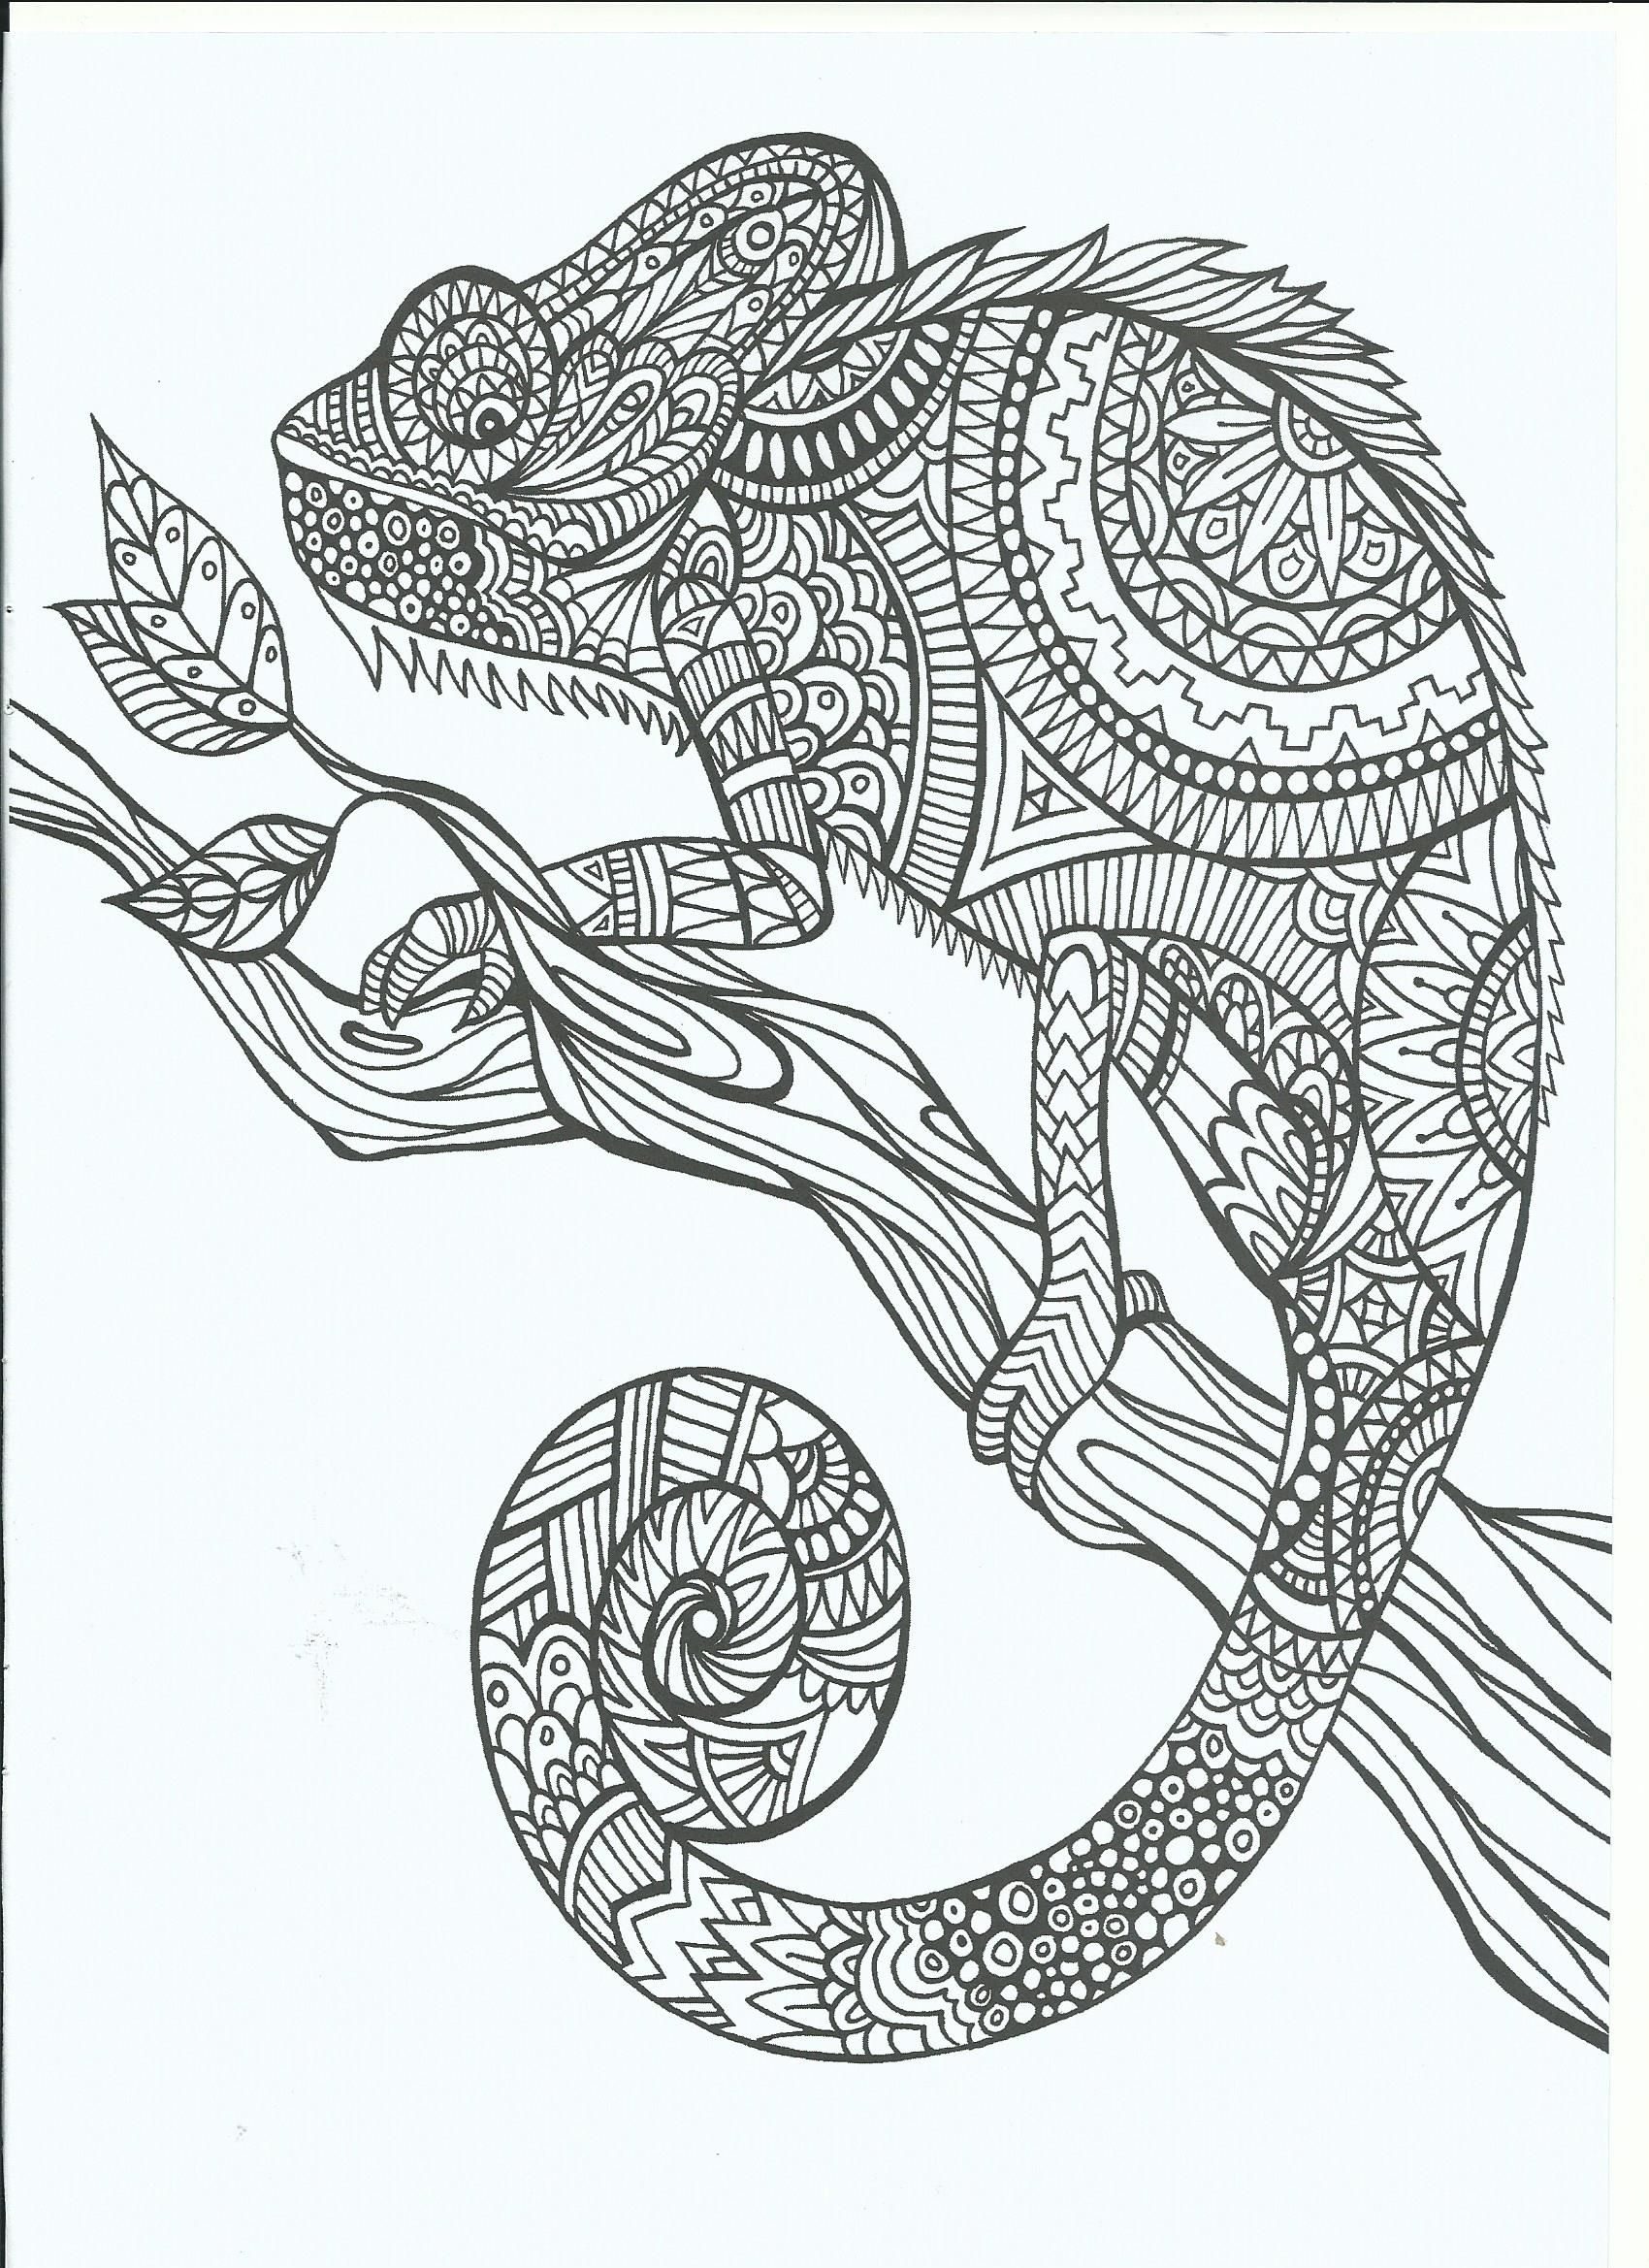 New Free Printable Coloring Pages for Adults {12 More Designs | Crafts &MD72